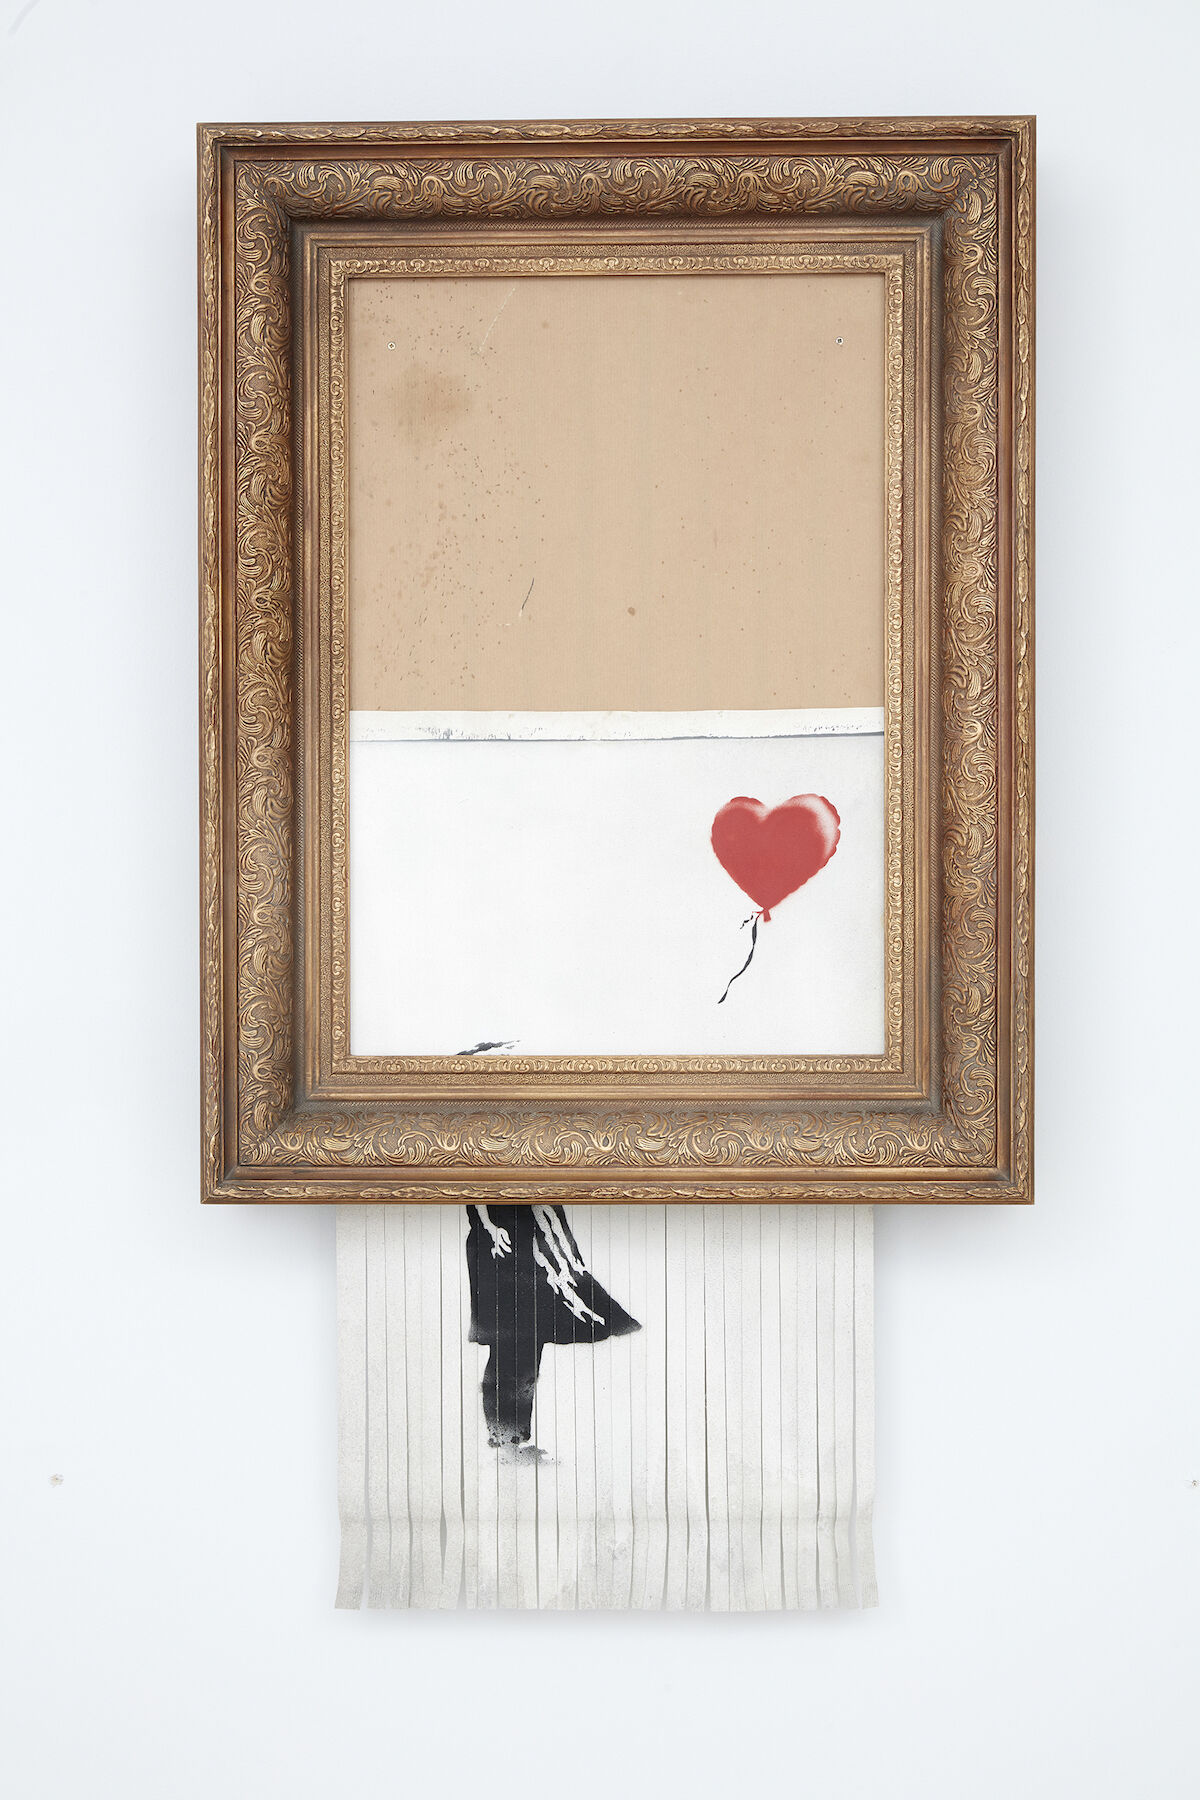 Bansky, Love is in the Bin, 2018. Sold for £1,042,000. Courtesy Sotheby's.